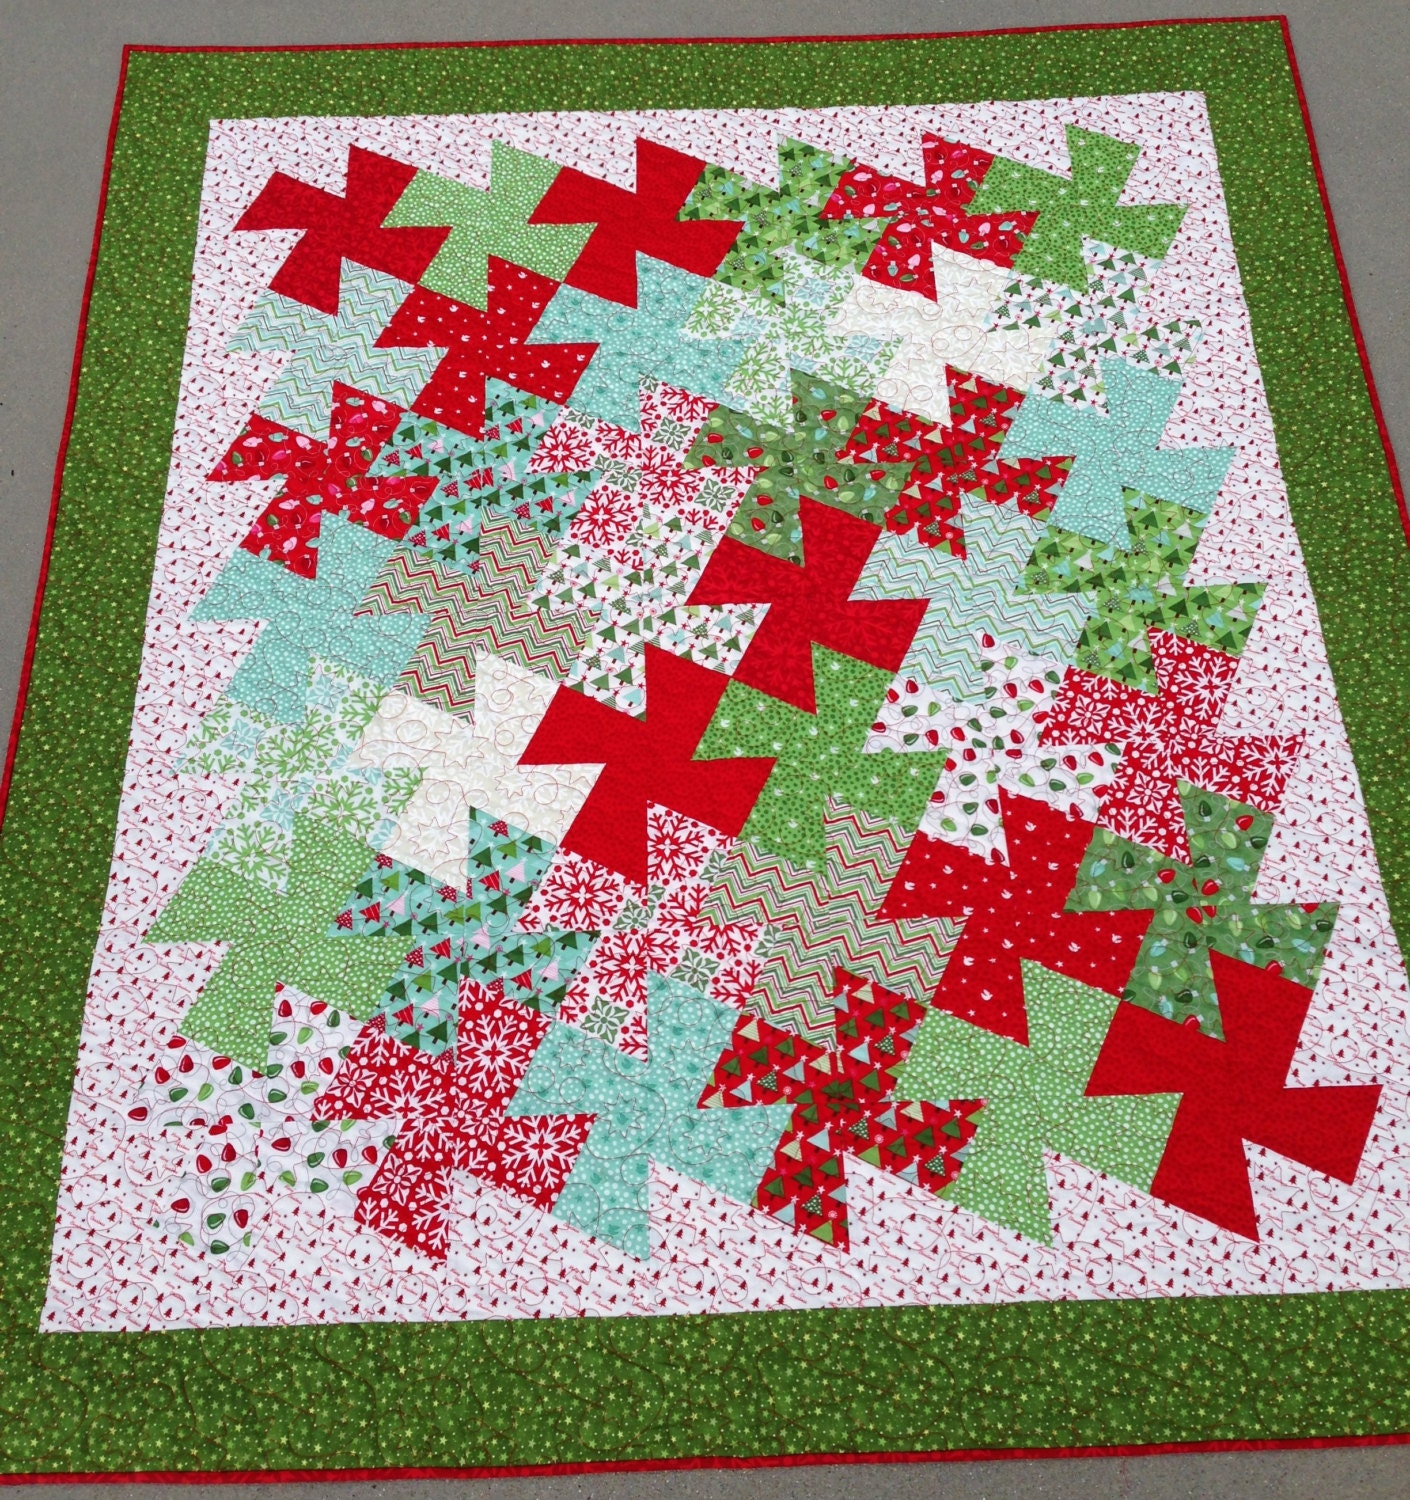 Twister Quilt Pattern Directions : Finished Christmas Twister Lap Quilt